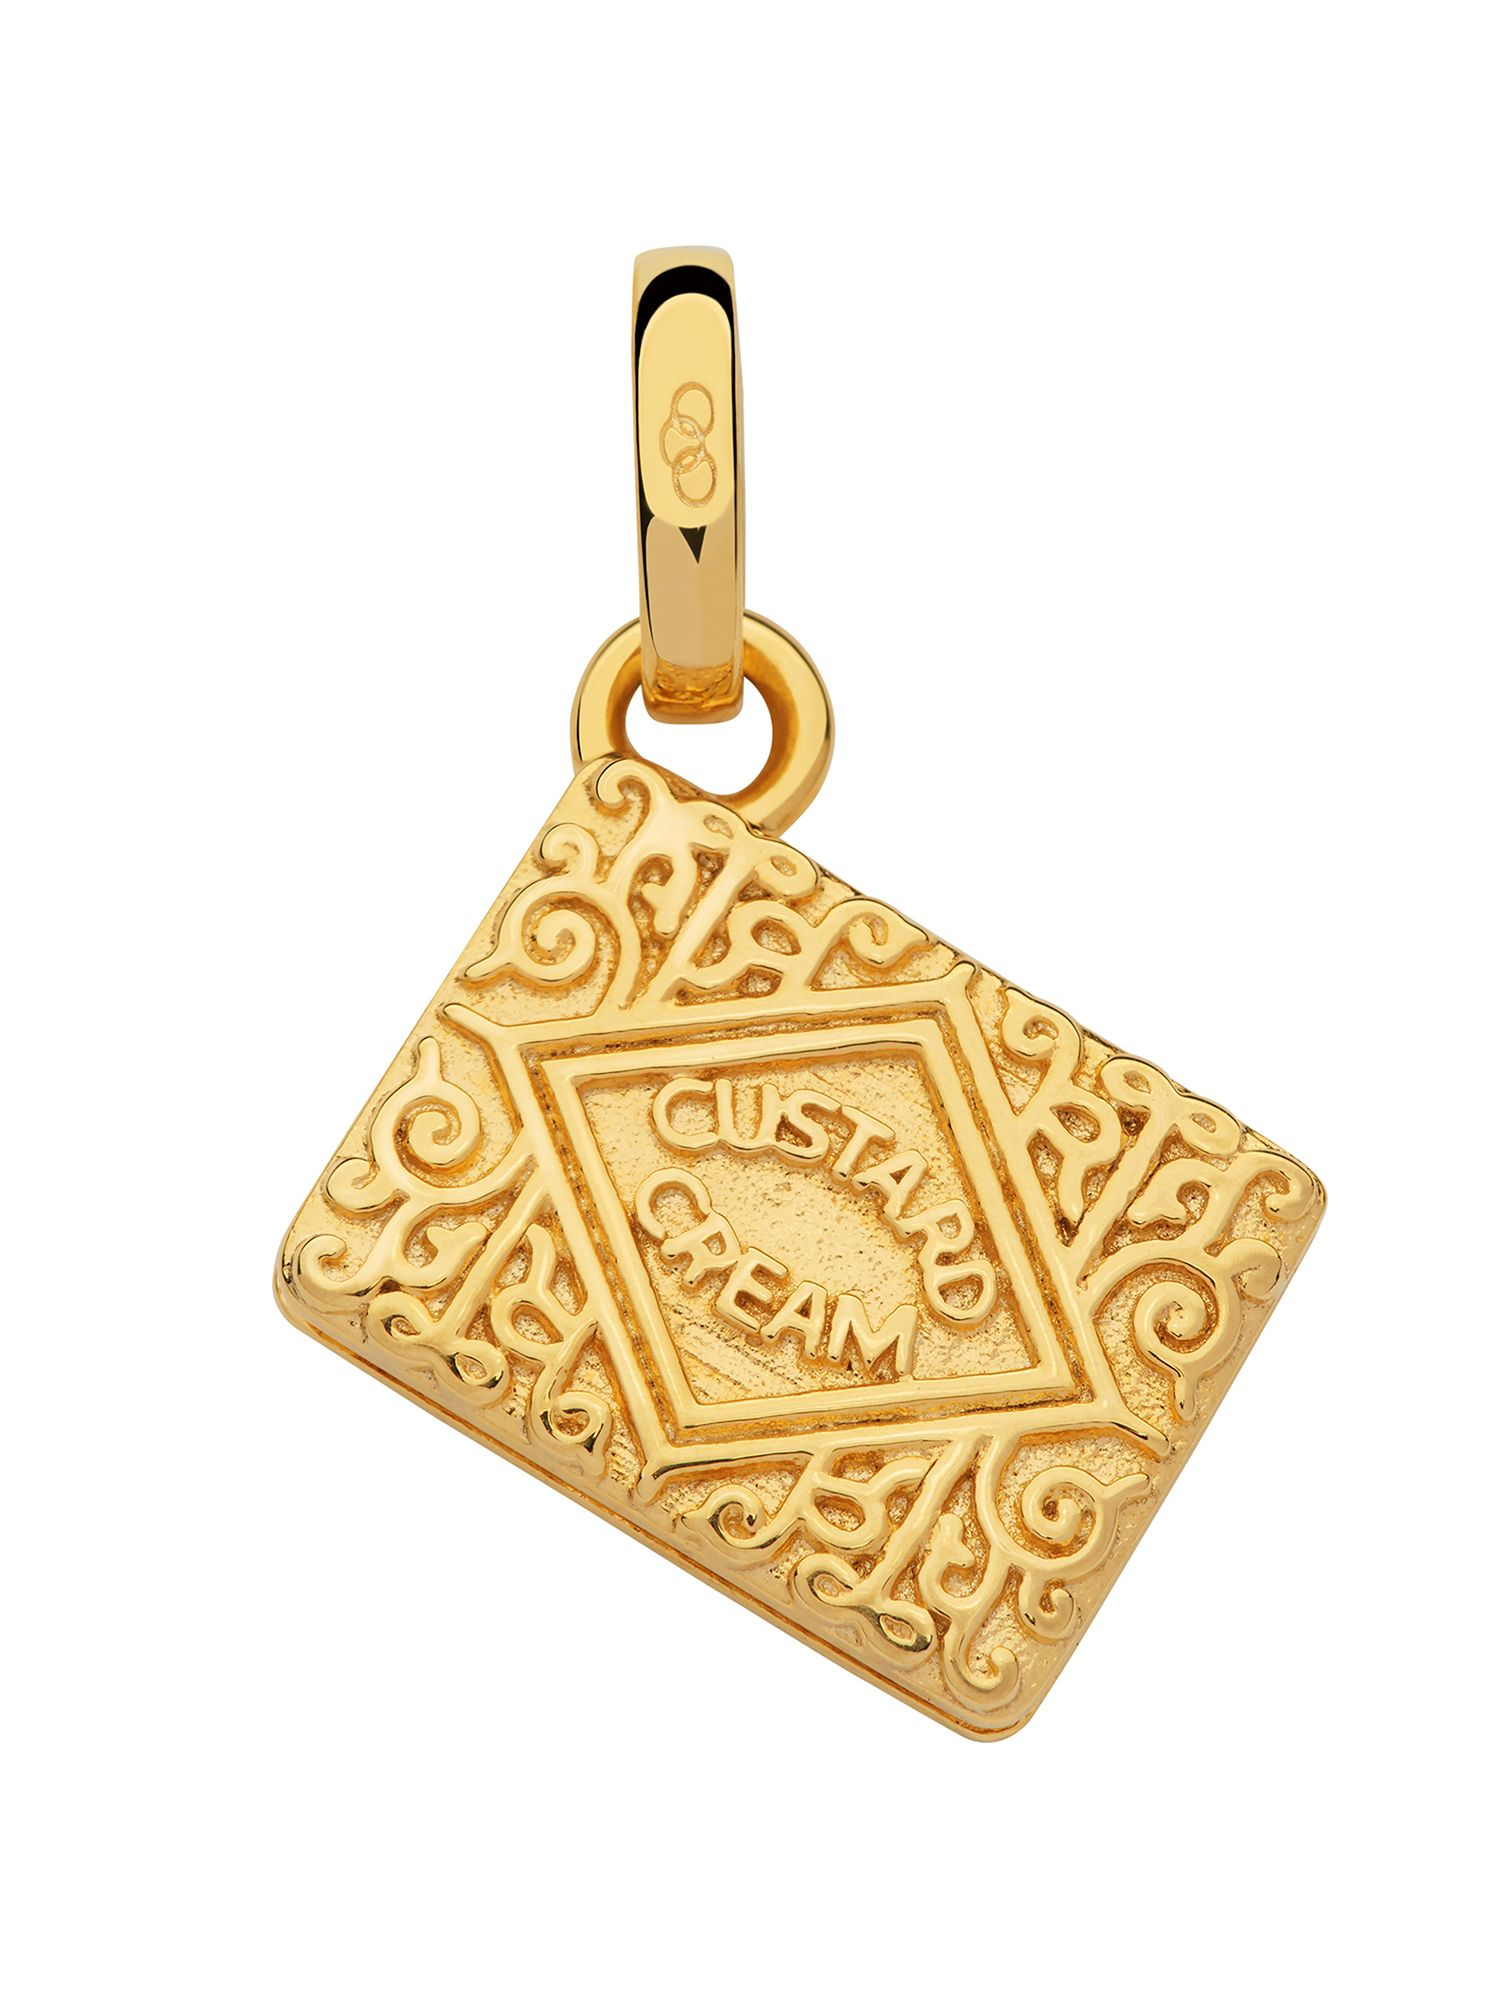 Links of London 18kt gold vermeil custard cream charm, N/A